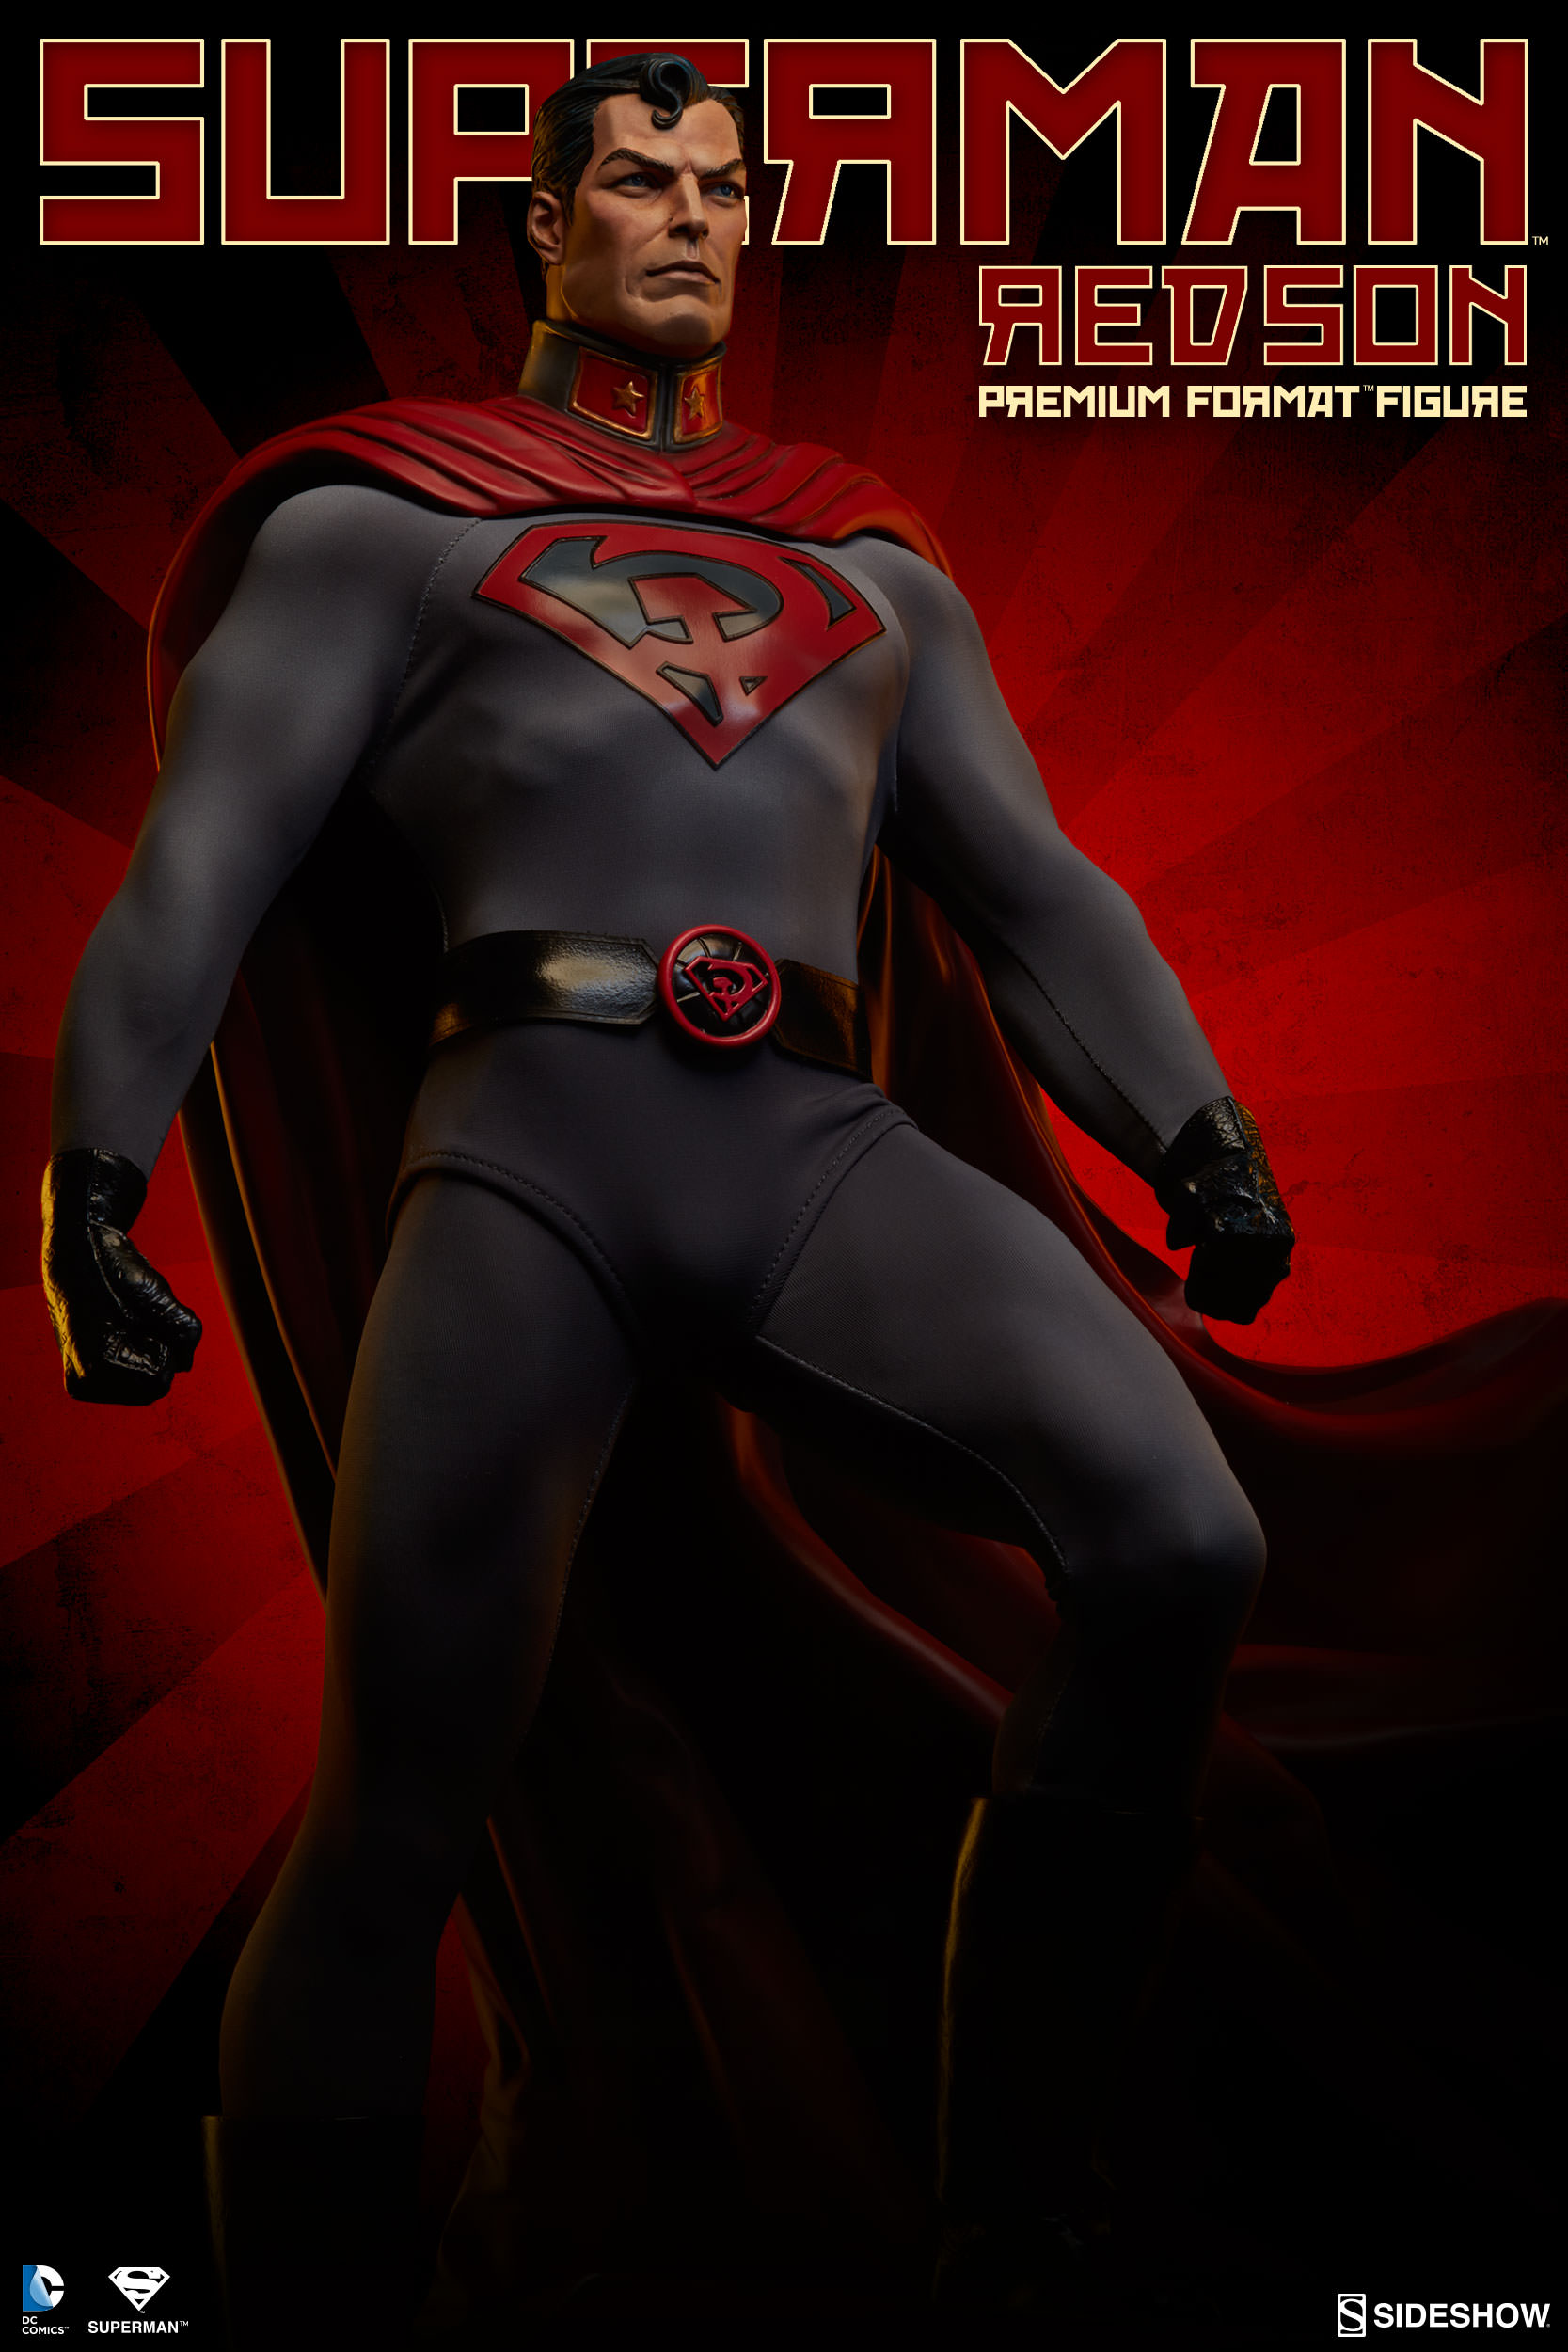 Superman Red Son Statue Premium Format Figure By Sideshow Collectibles Fairway Hobbies